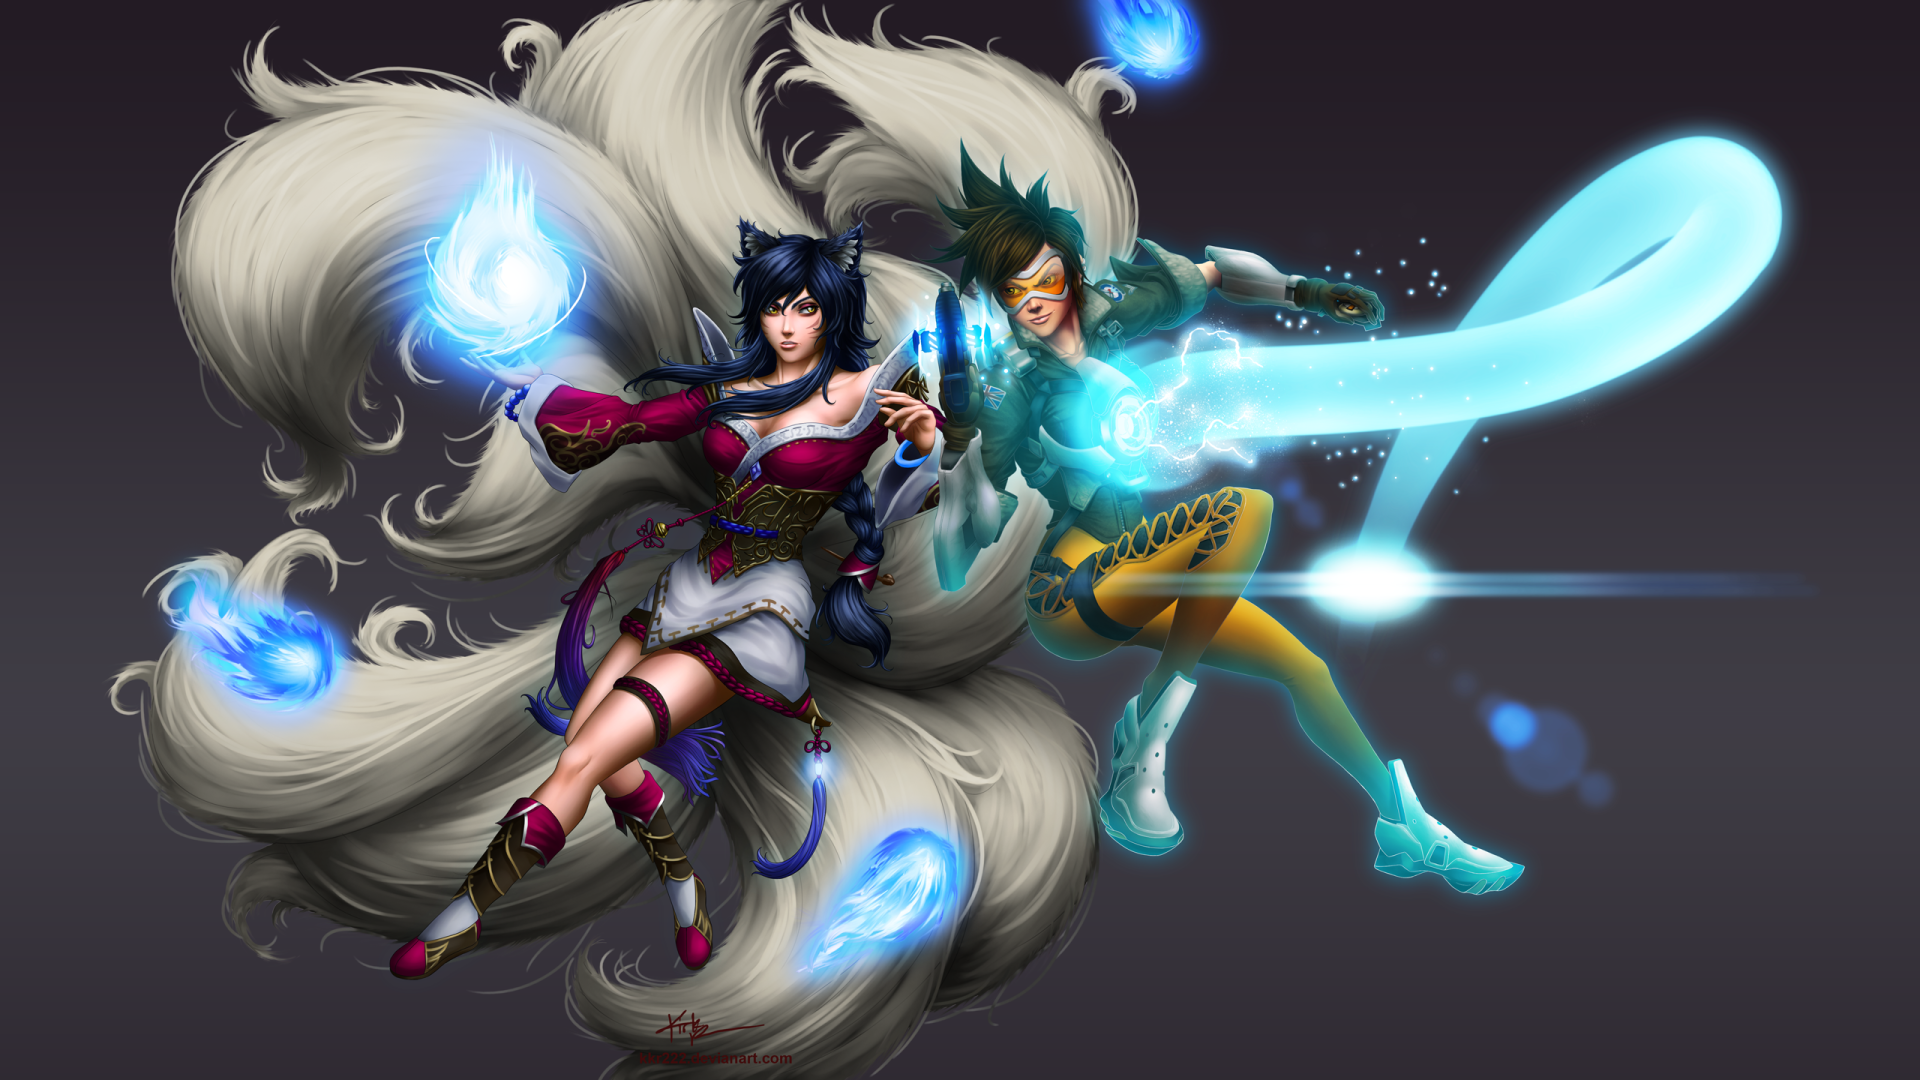 Image Result For Video Game Crossover Flame Tracer Overwatch League Of Legends Ahri Wallpaper